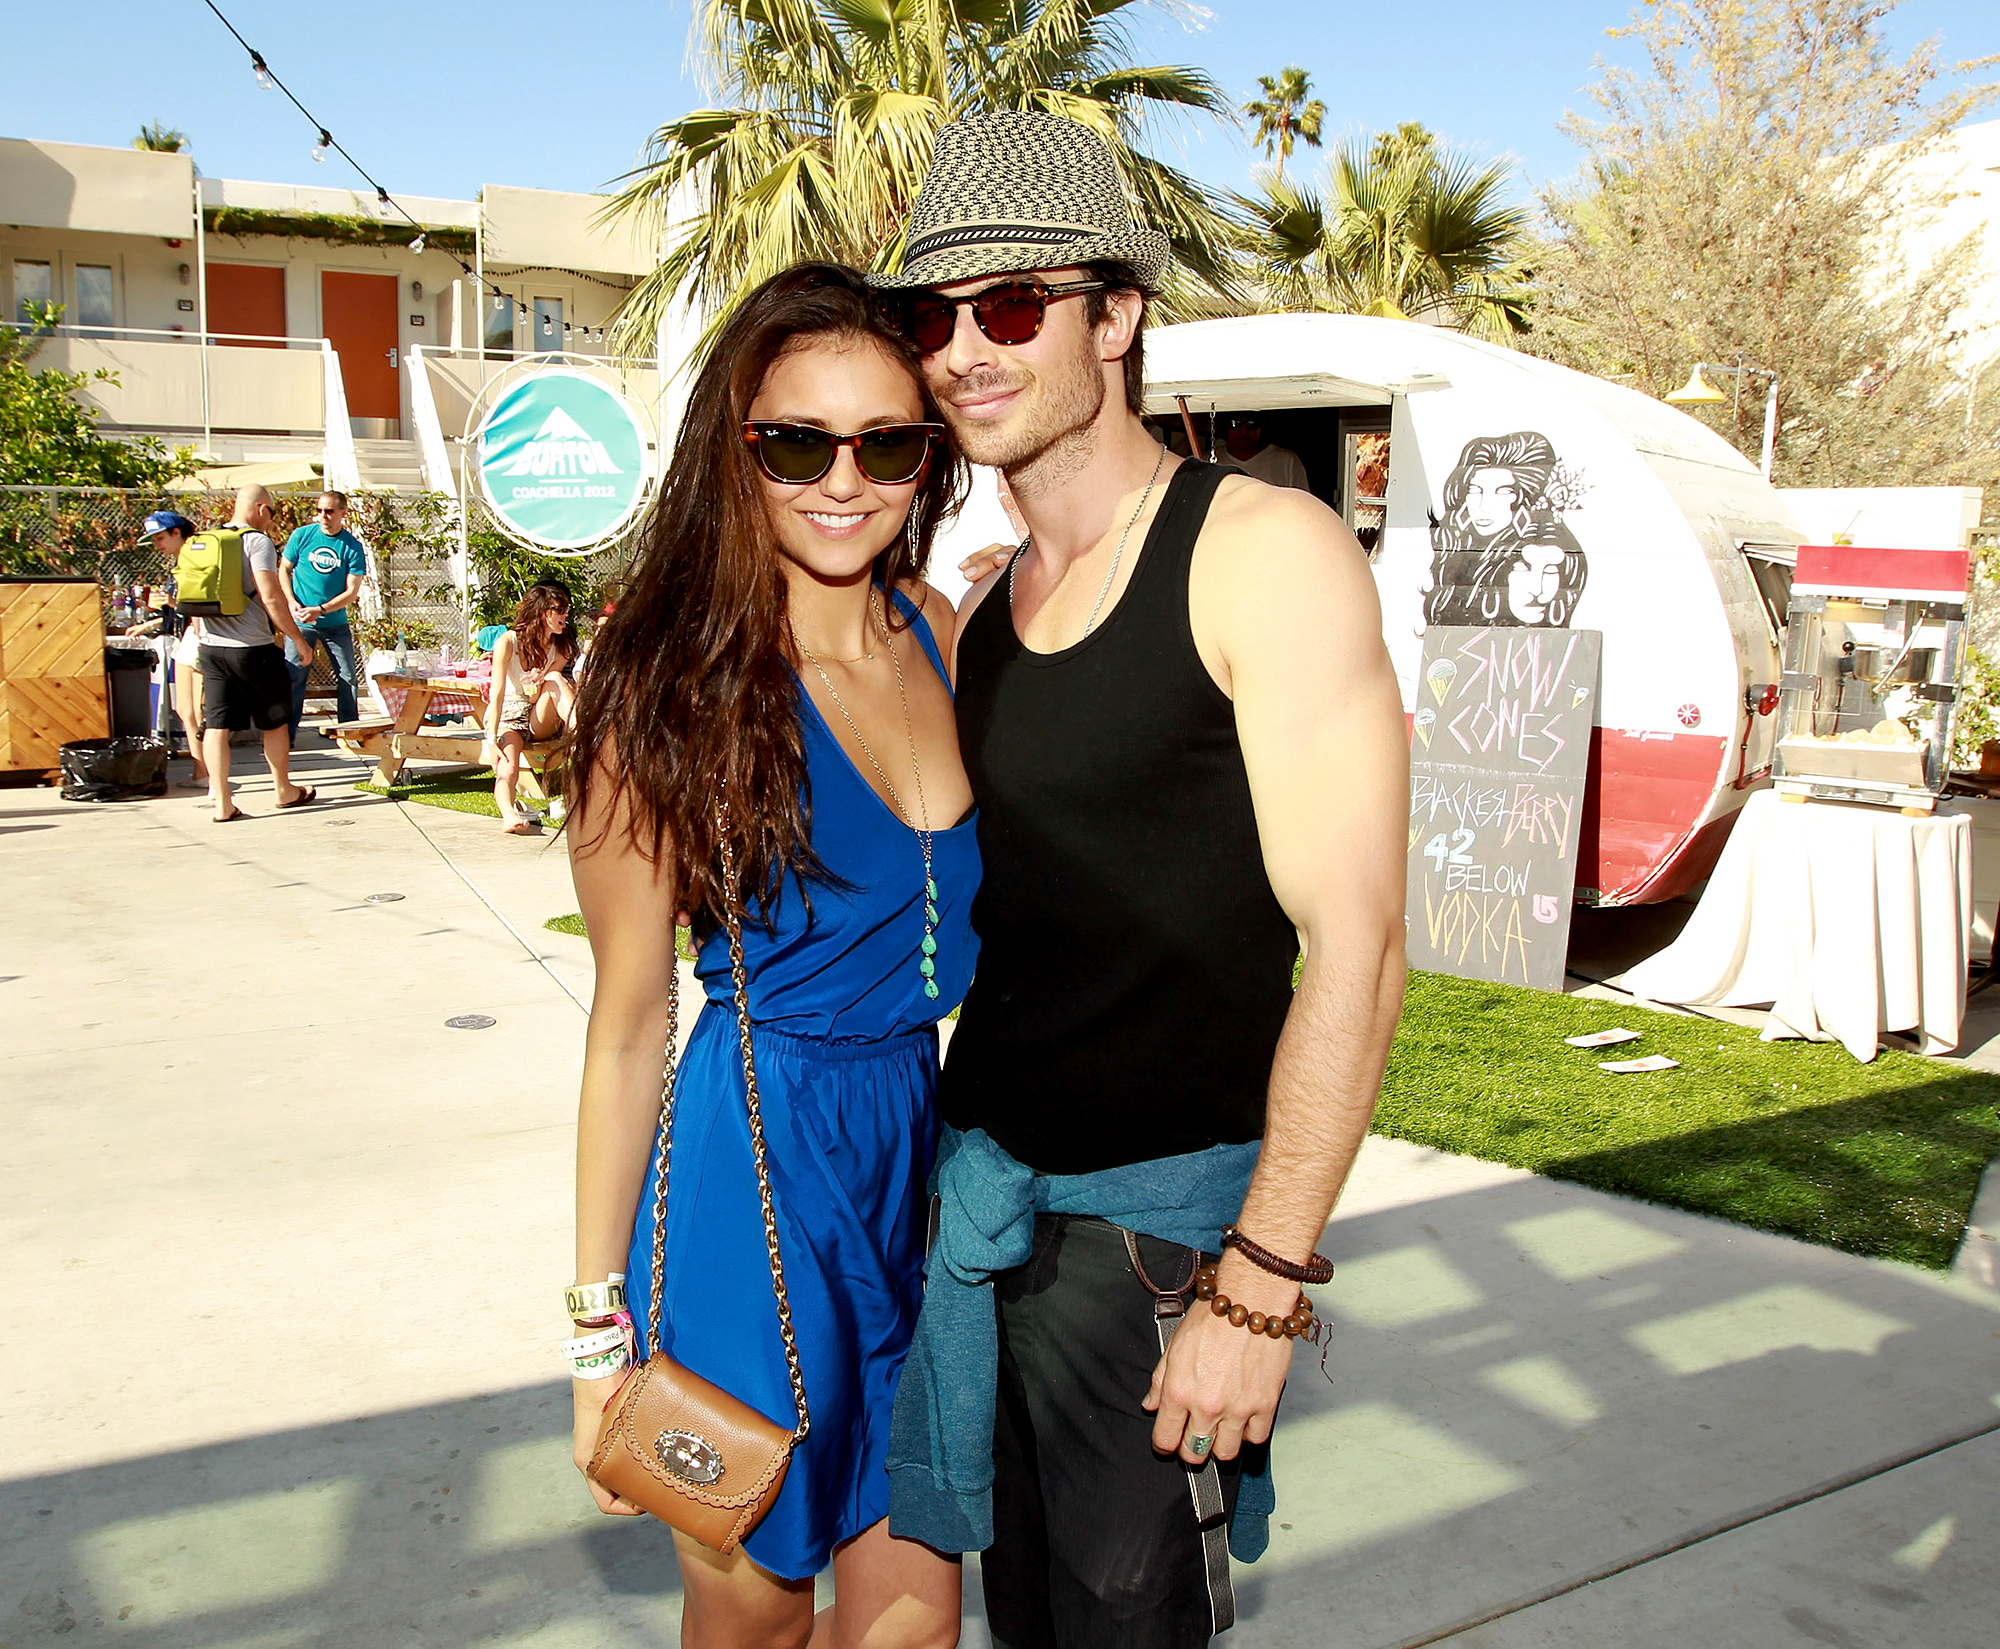 Nina-Dobrev-and-Ian-Somerhalder-coachella - The Vampire Diaries costars flexed their fit arms at a Coachella pool party and barbecue in 2012.